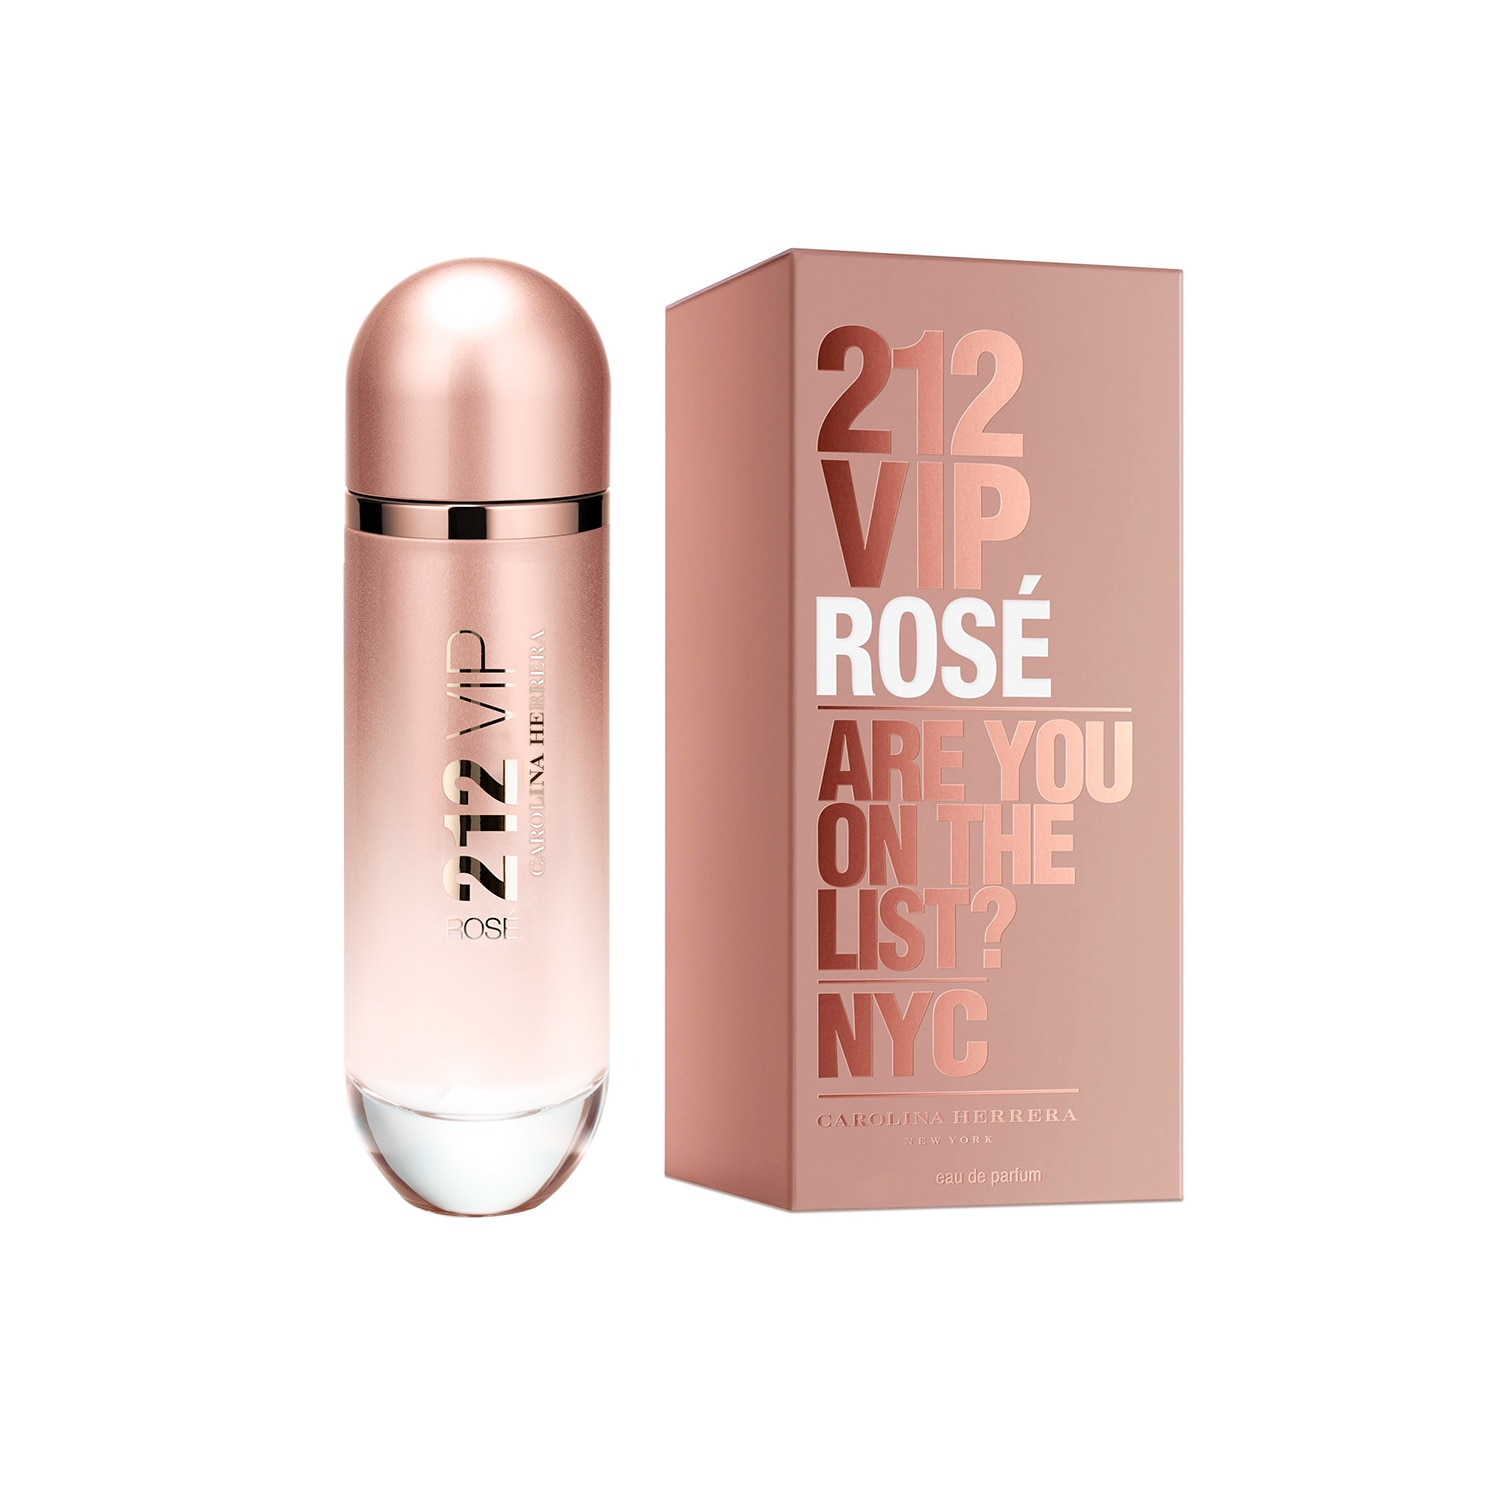 212 VIP ROSE EAU DE TOILETTE 125 ML